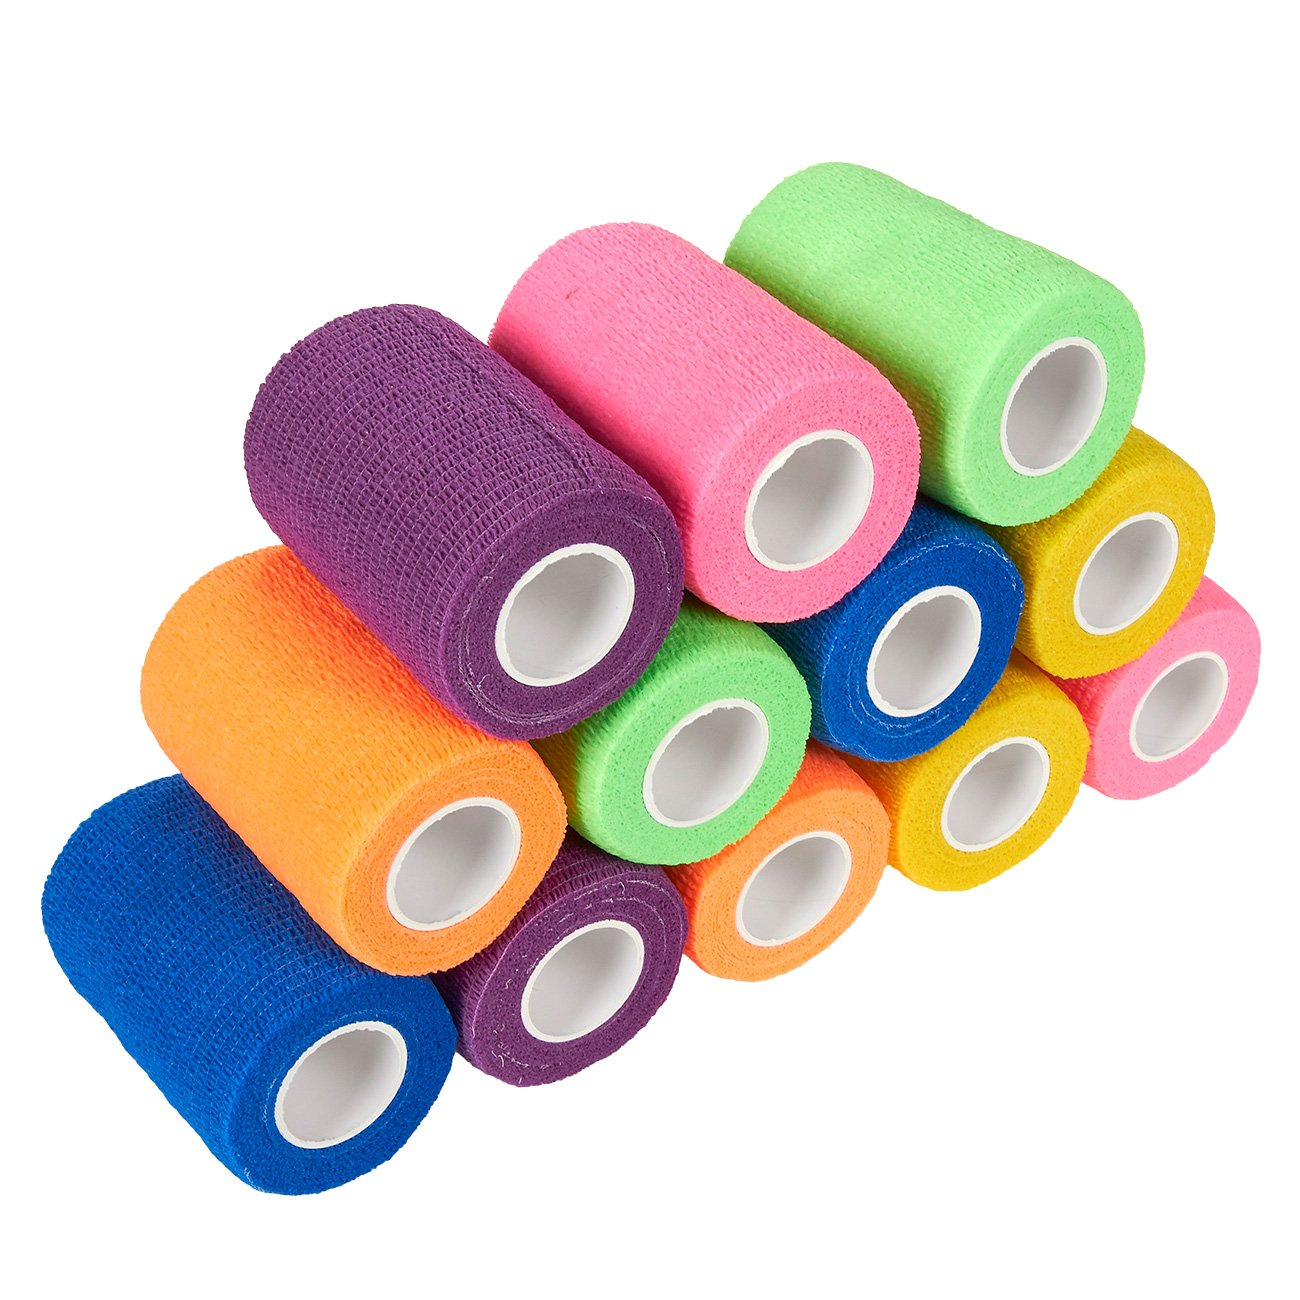 Juvale Pack of 12 Vet Wraps - Gauze Rolls - Cohesive Bandage - Bandage Wrap for Animals, Assorted Colors, 3 Inches x 66.9 Inches by Juvale